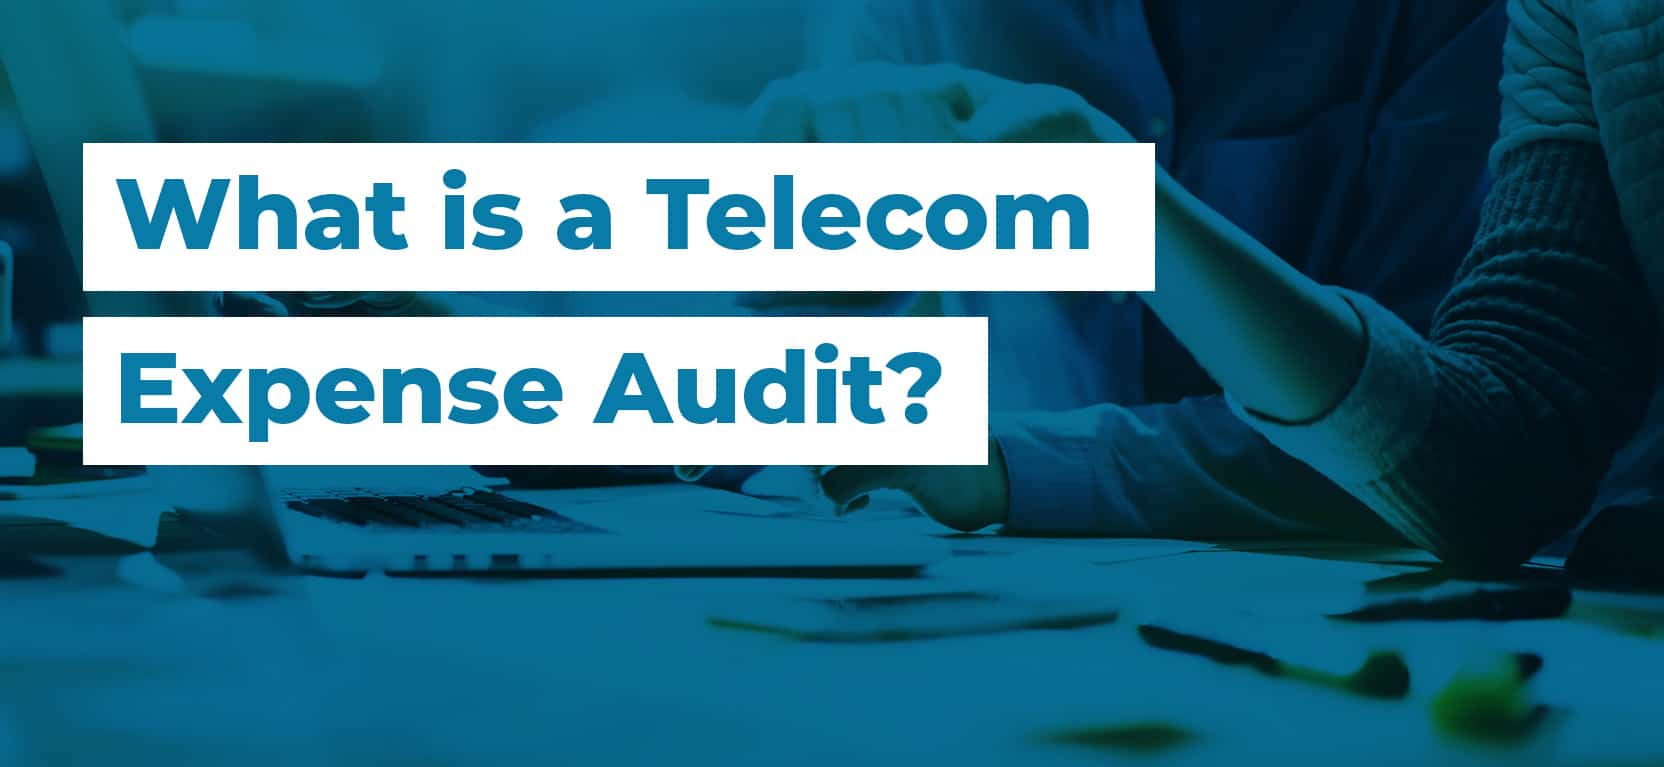 60 What is a Telecom Expense Audit2